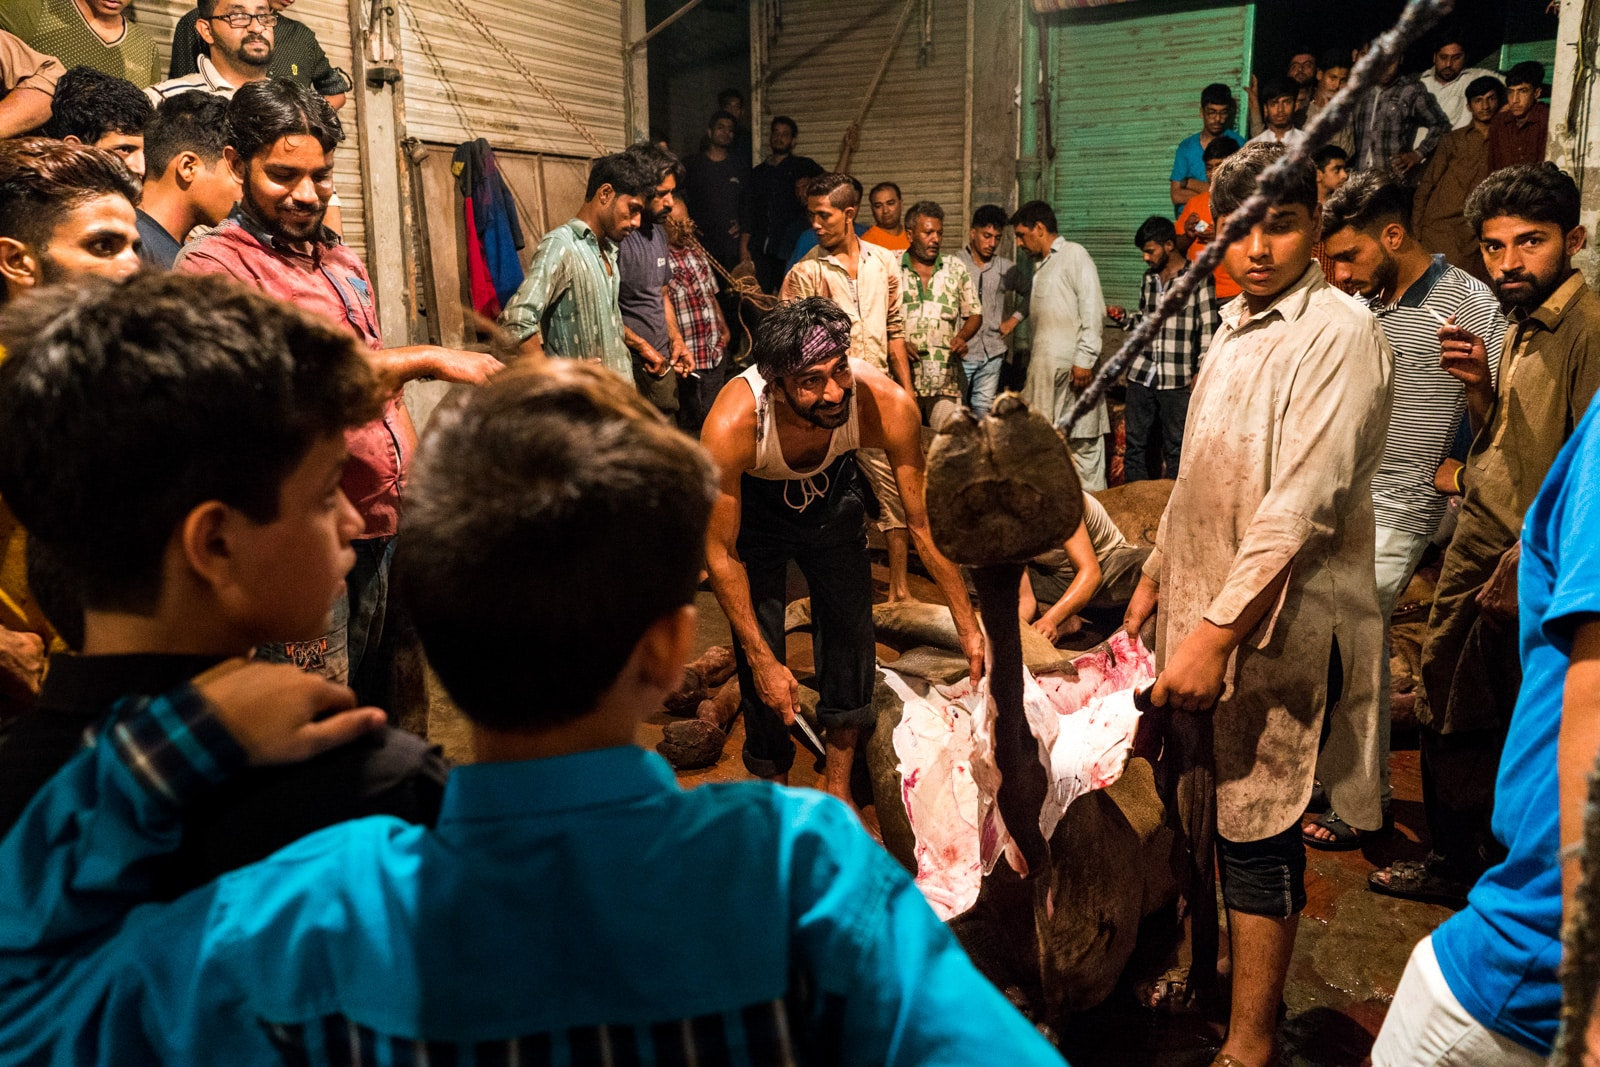 Celebrating Eid al-Adha in Lahore, Pakistan - Boys watching a camel being skinned - Lost With Purpose travel blog